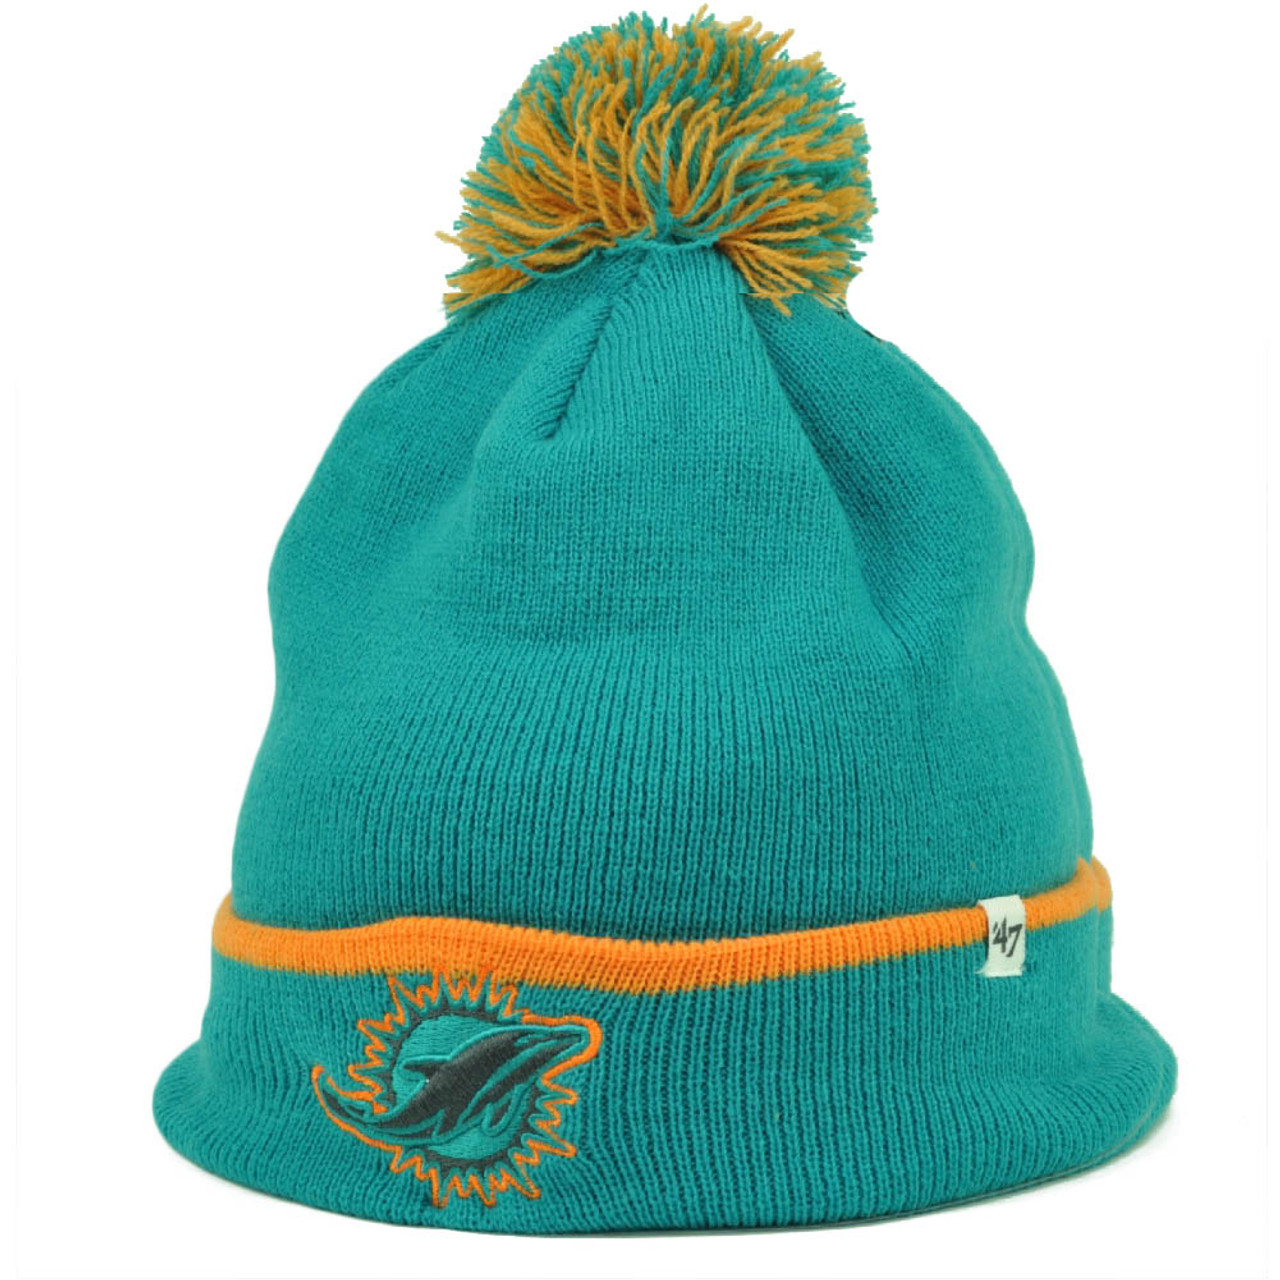 bad1714be8e Miami Dolphins  47 Brand Forty Seven Cuffed Pom Pom Knit Beanie Baraka  Turquoise - Sinbad Sports Store